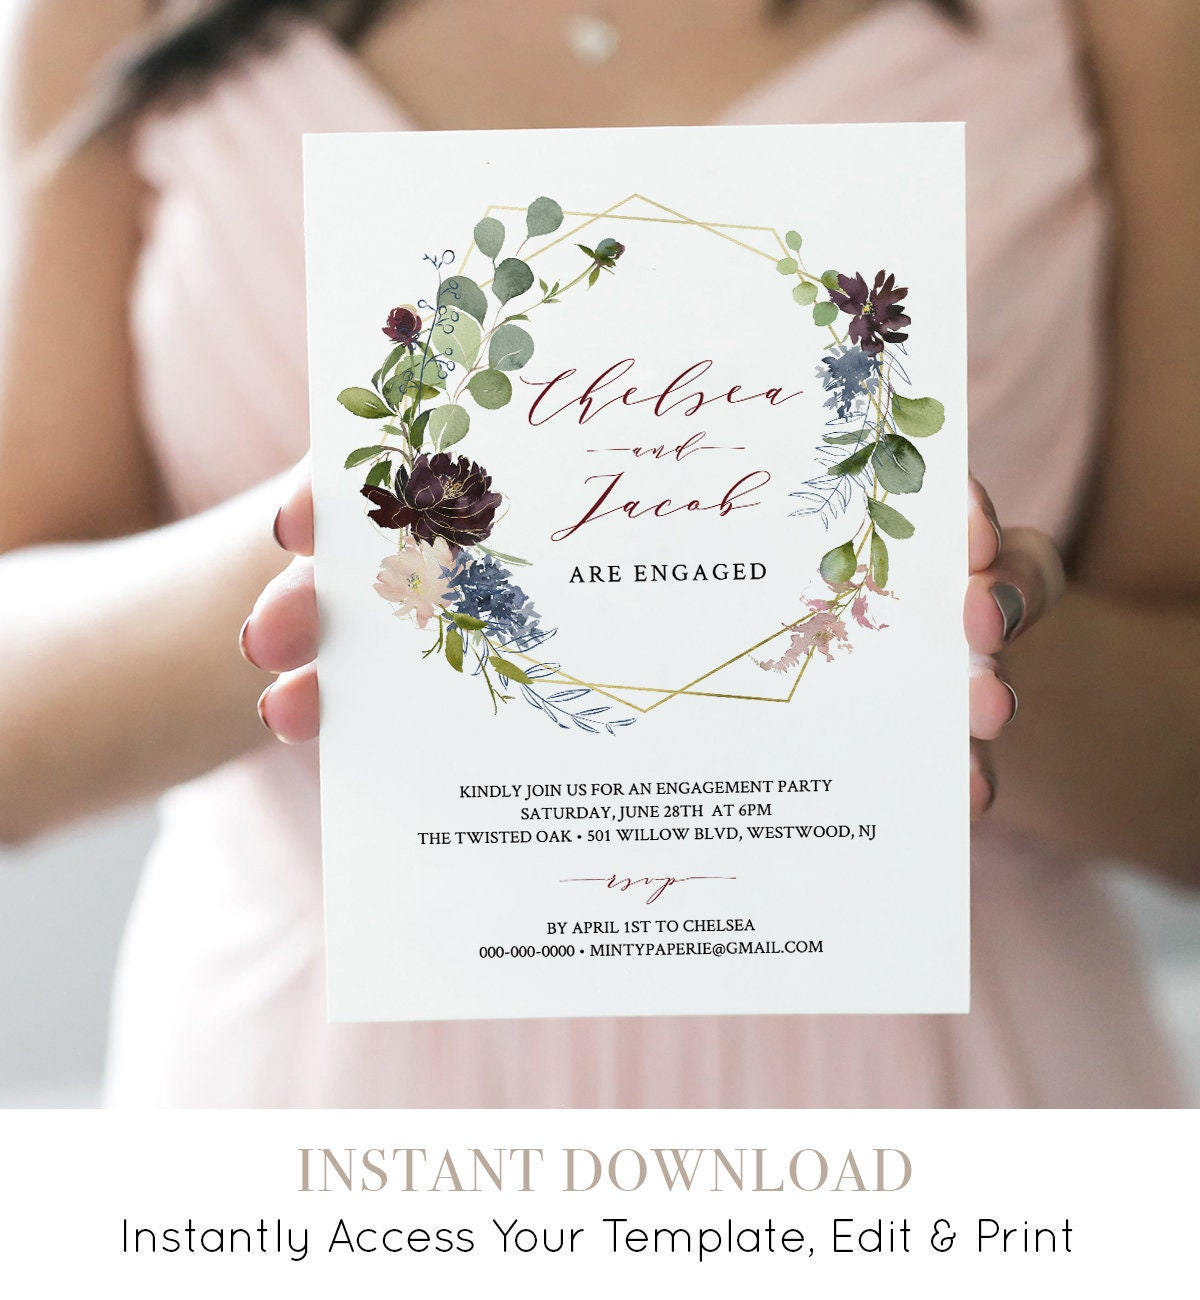 Engagement Party Invitation, INSTANT DOWNLOAD, 100% Editable ...